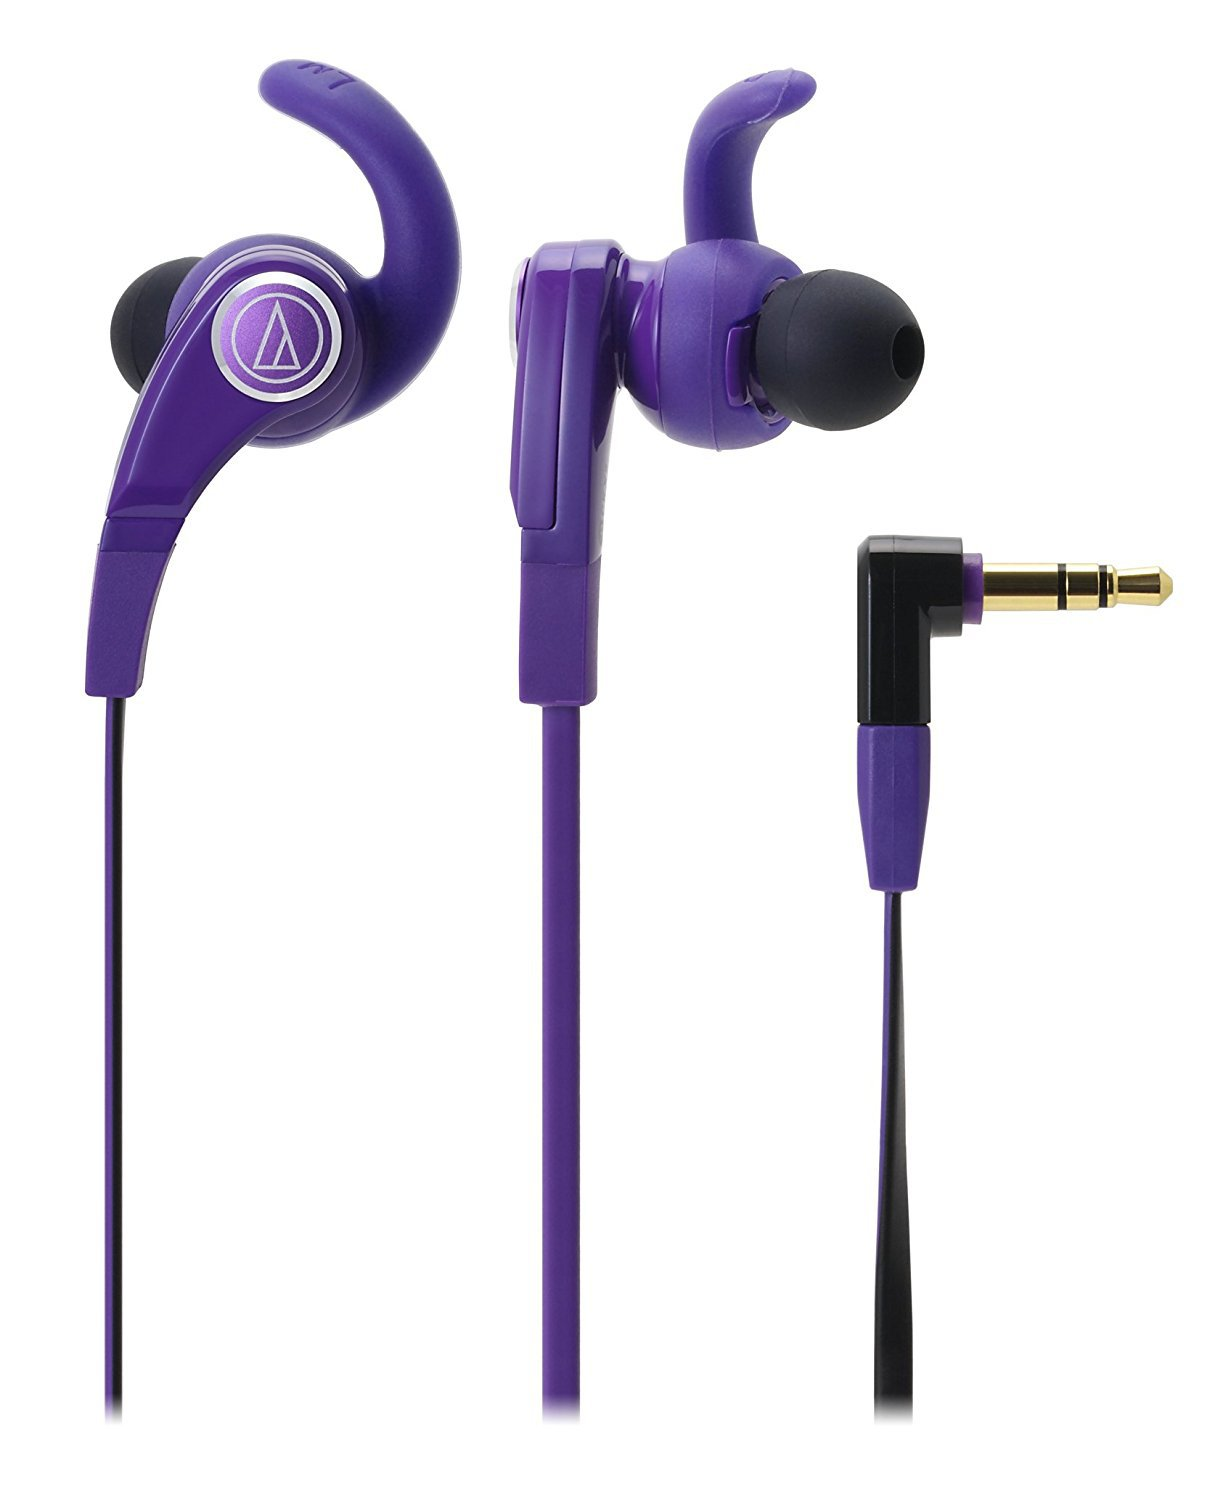 Audio Technica Canal Earphone SONIC FUEL ATH-CKX7 PL purple Japan NEW F/S